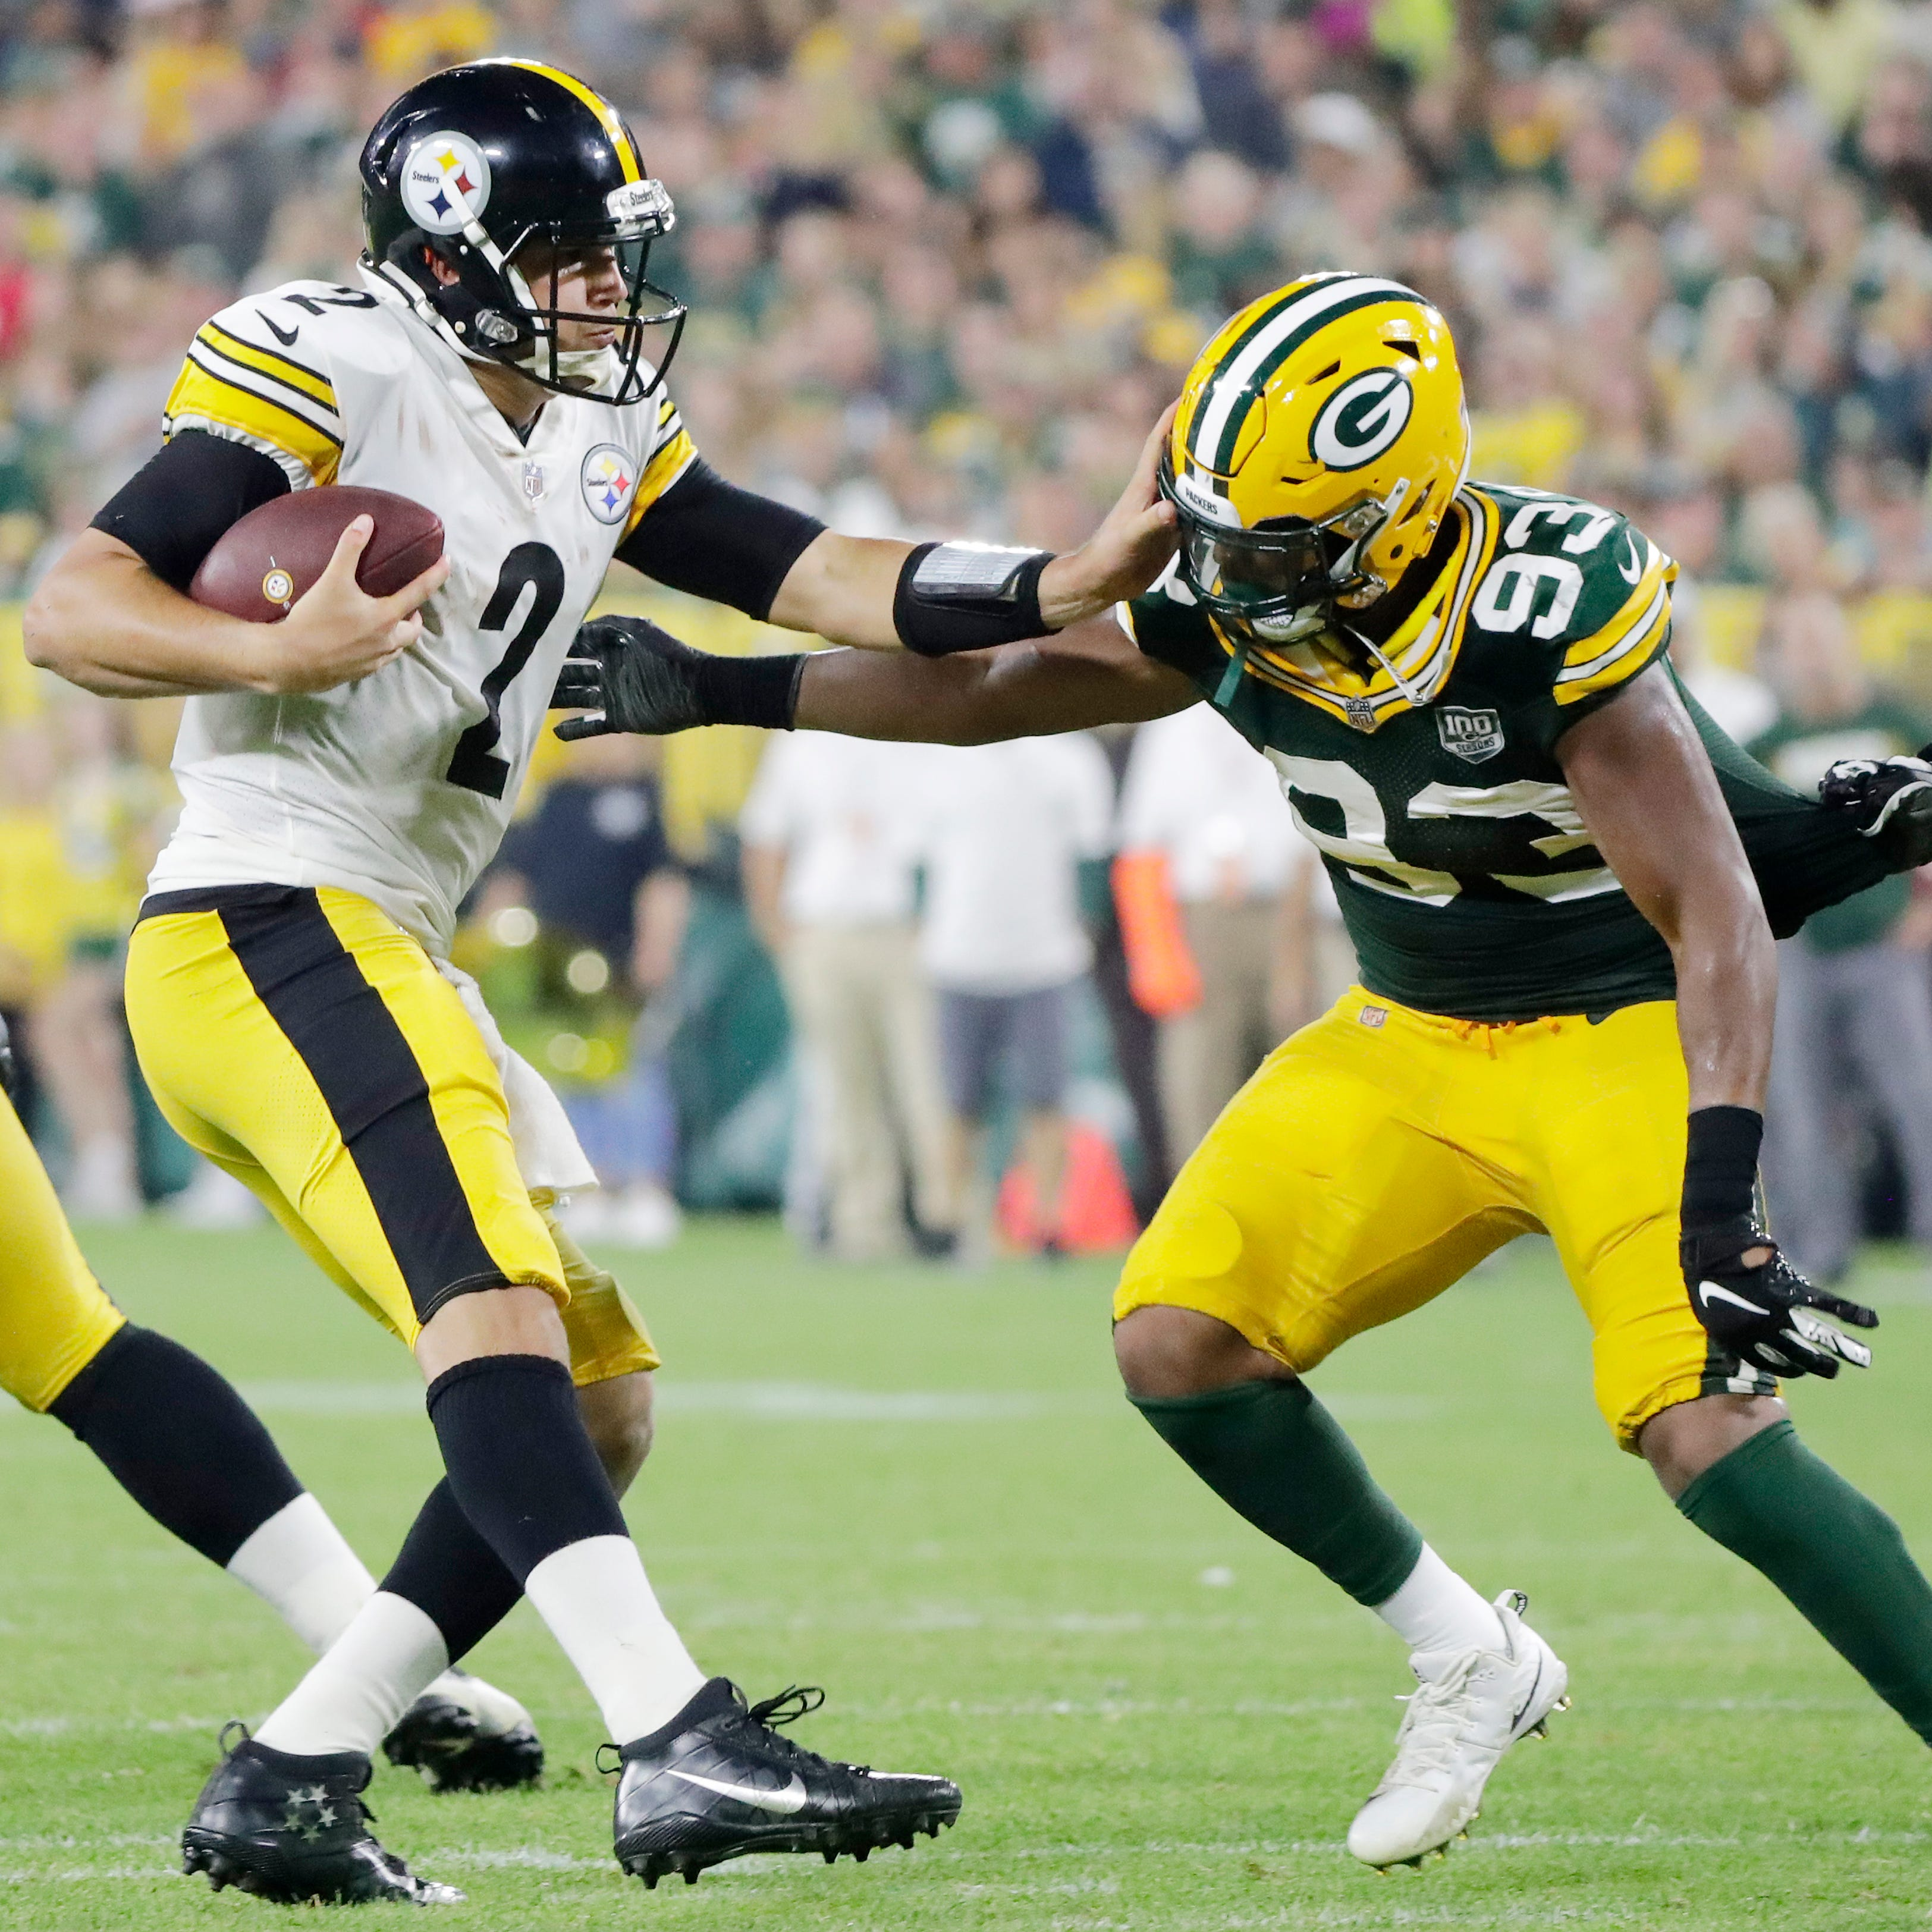 Packers analysis: Lack of premier pass rusher remains most glaring weakness